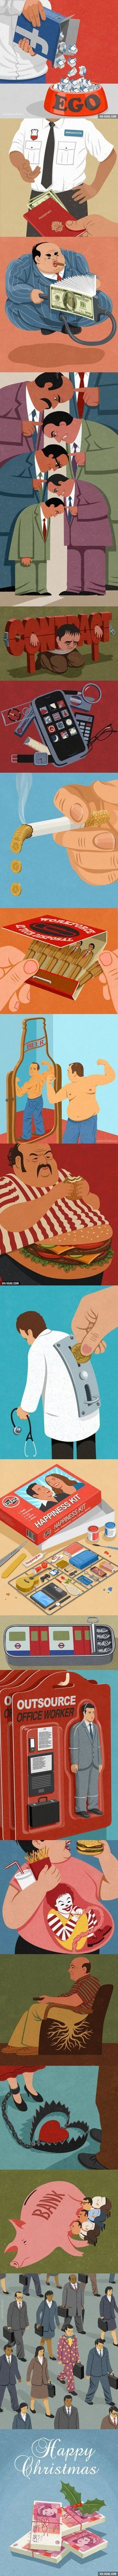 19 Satirical Illustrations from John Holcroft Capture The Humor In Our Modern-Day Flaws